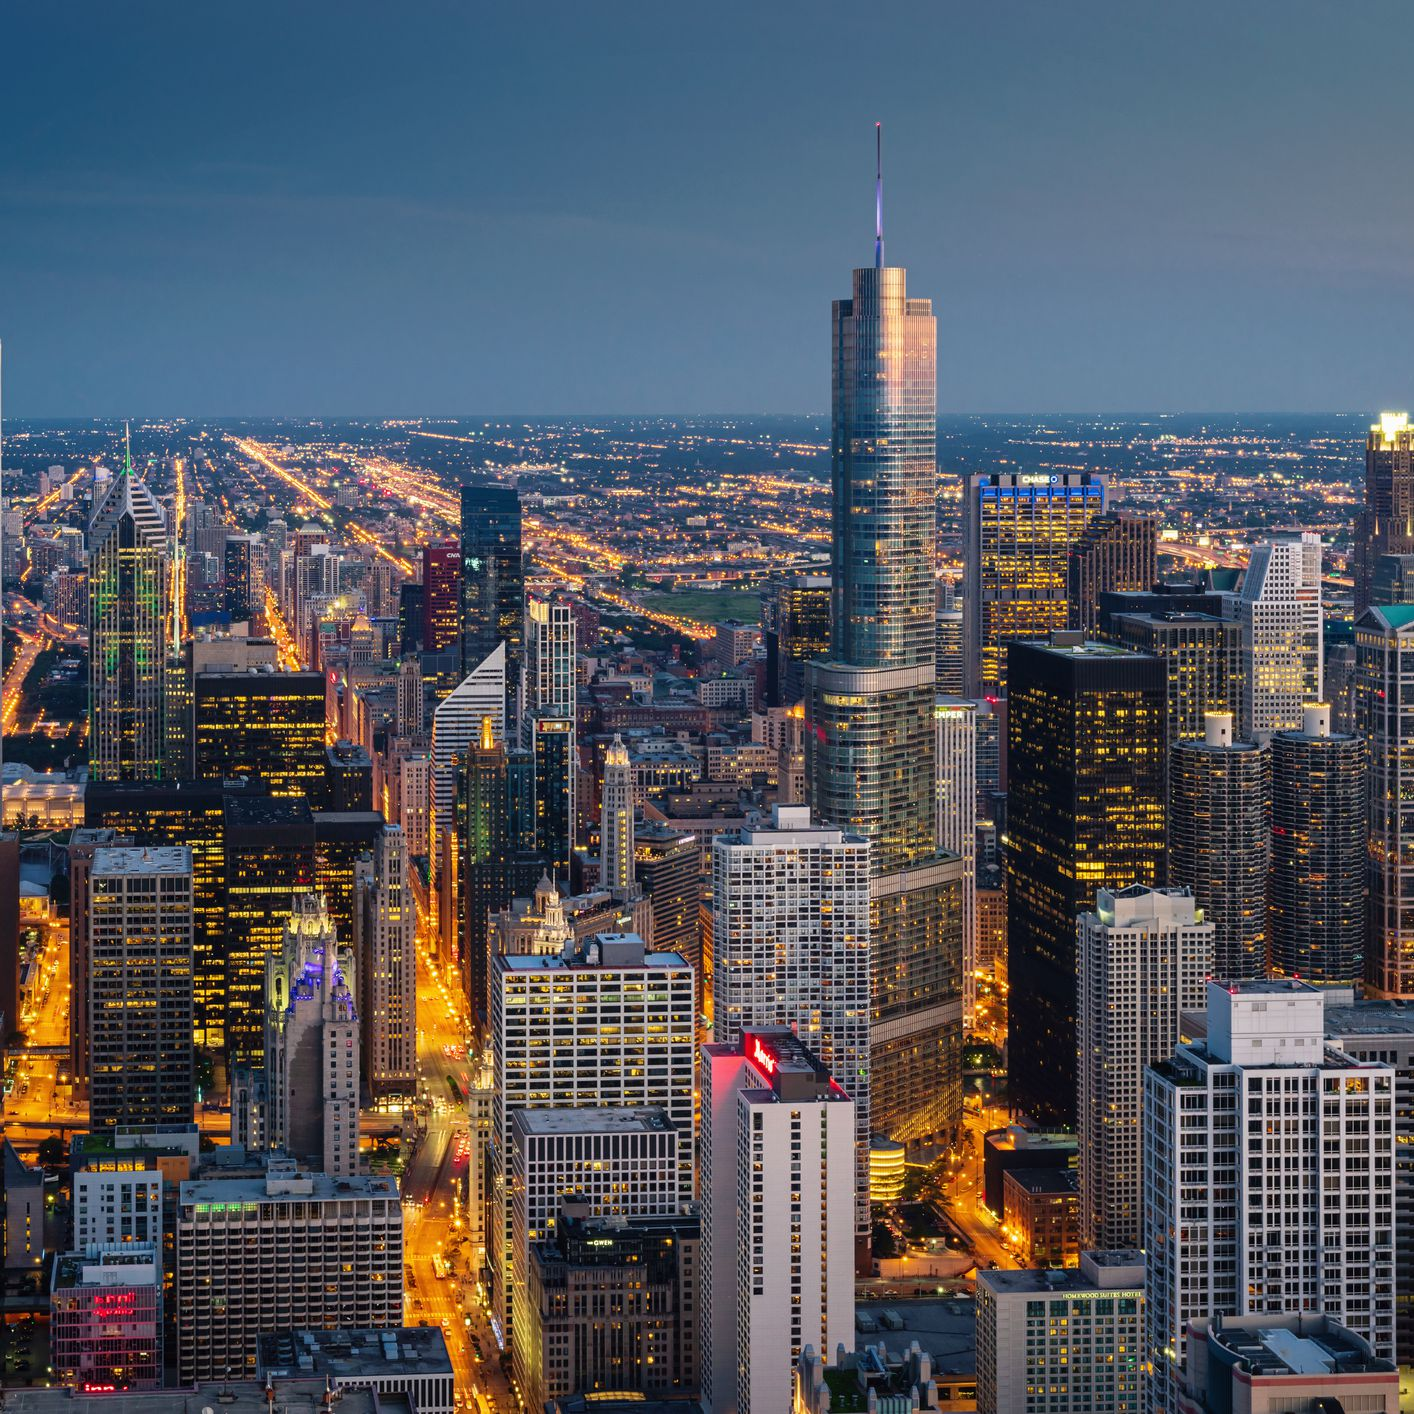 Nightlife in Chicago: Best Bars, Clubs, & More